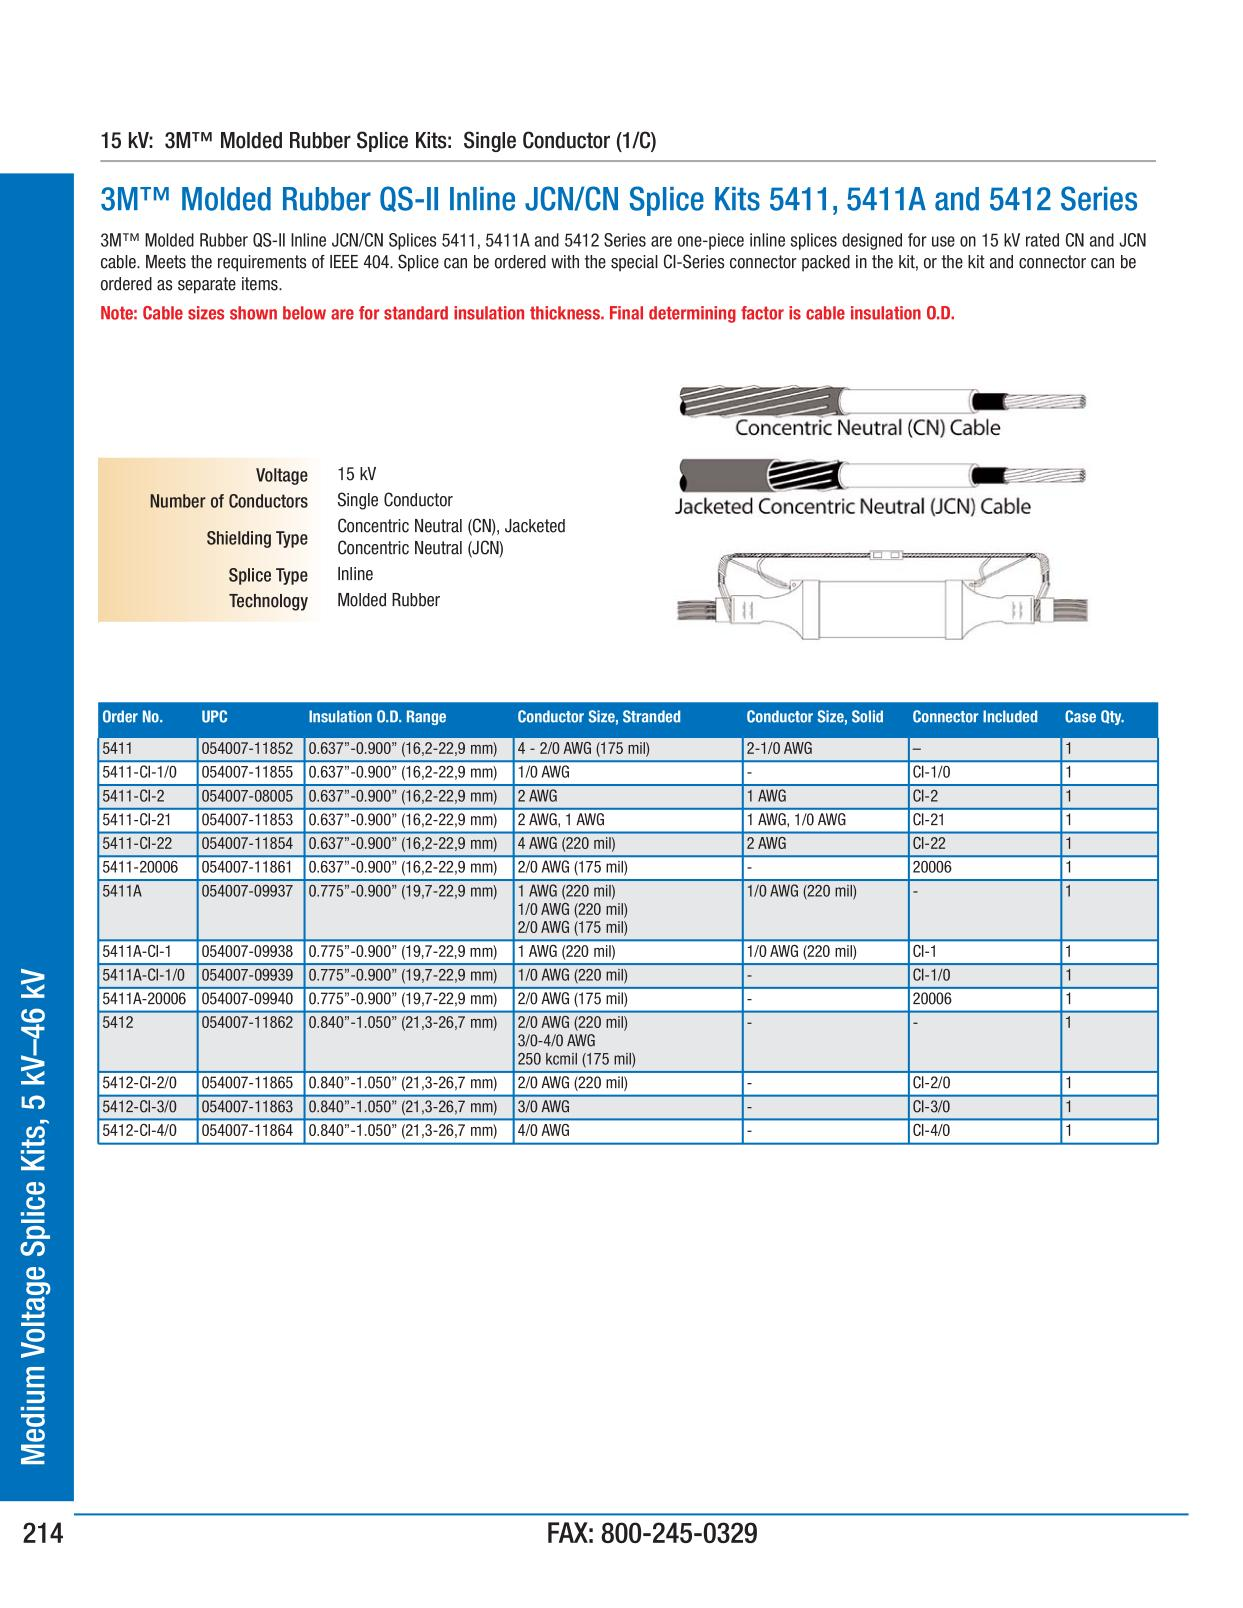 3M Electrical Products Page 214 - Medium Voltage Splice Kits, 5 kV ...